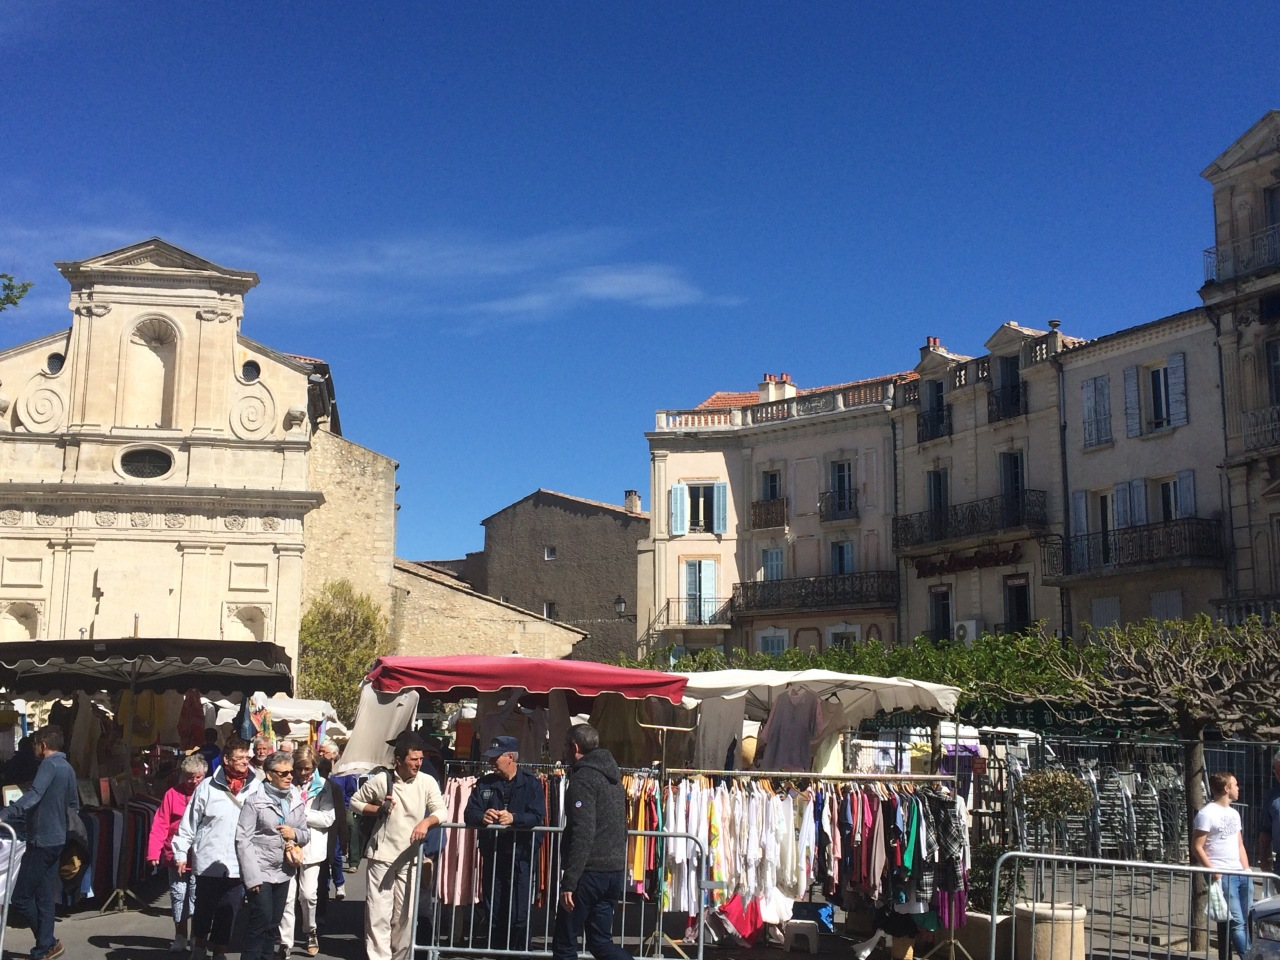 A market, a Citadelle & difficulties with what to wear.